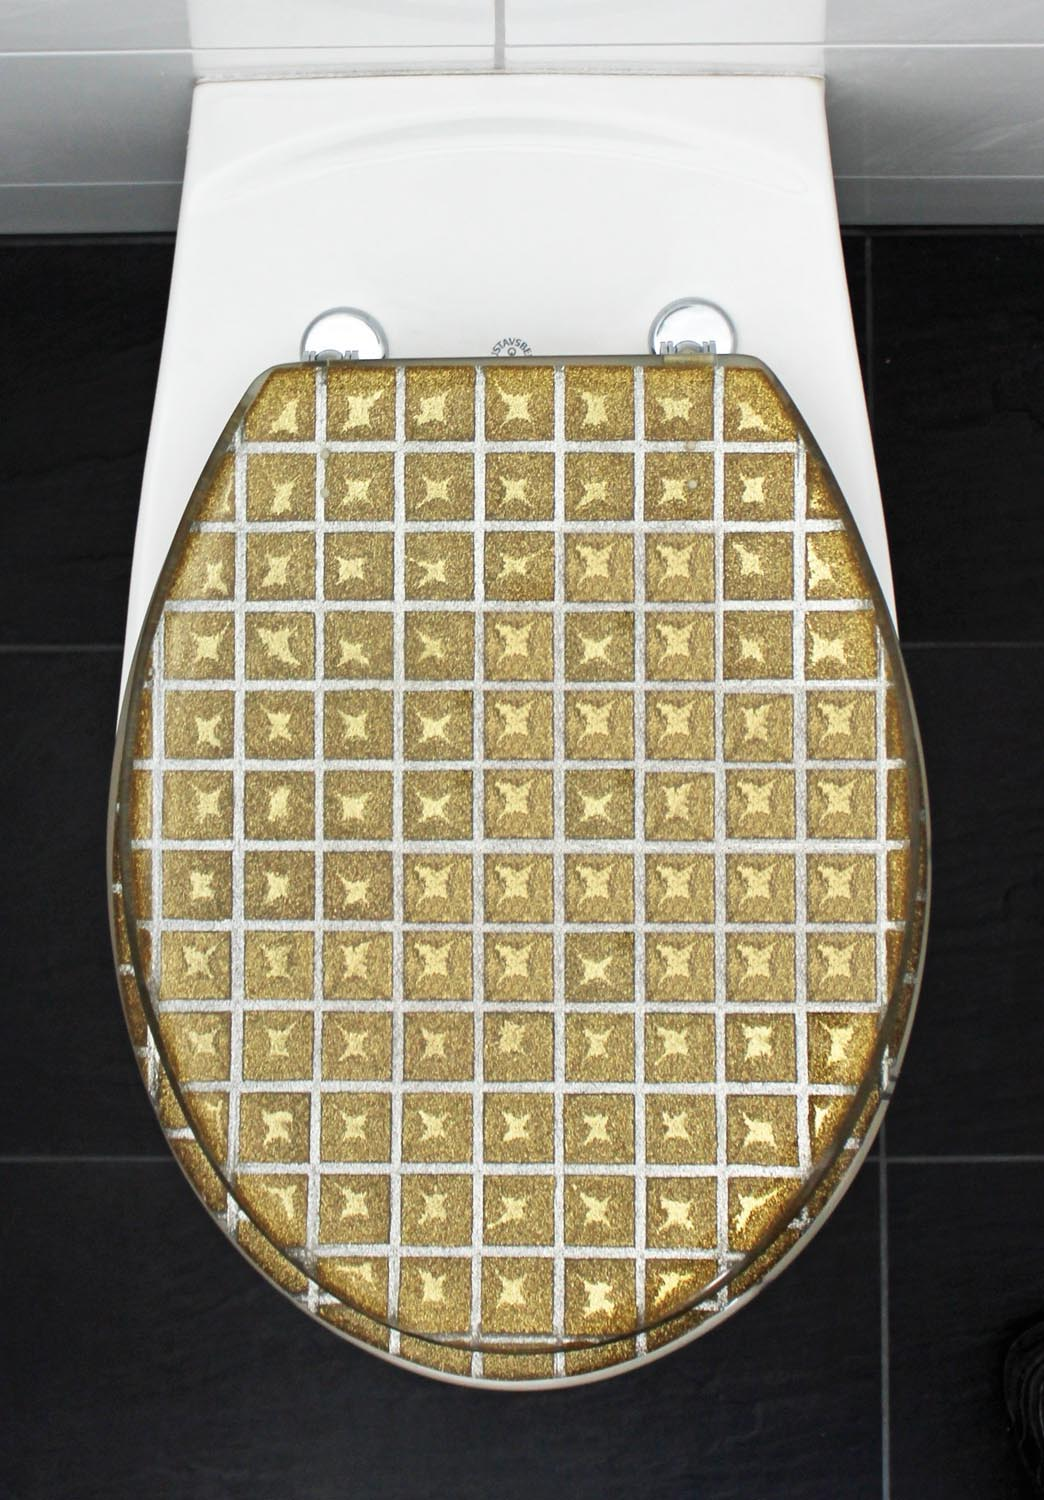 gold toilet seat cover. Gold Toilet Seat Cover  Home Design Health support us